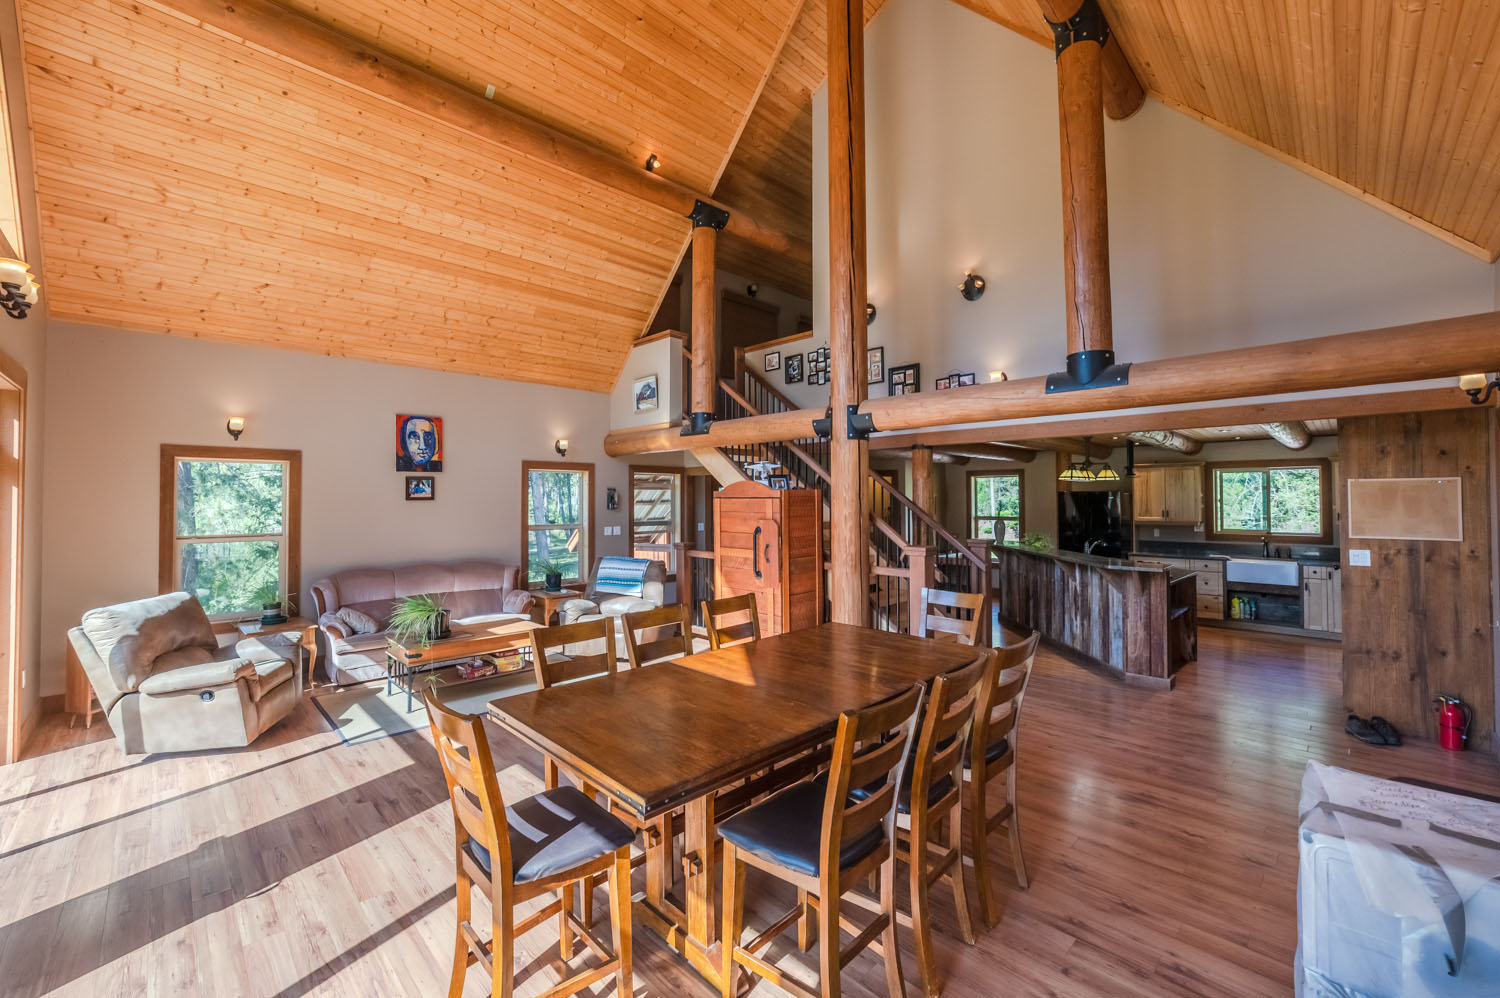 Willow springs ranch 23